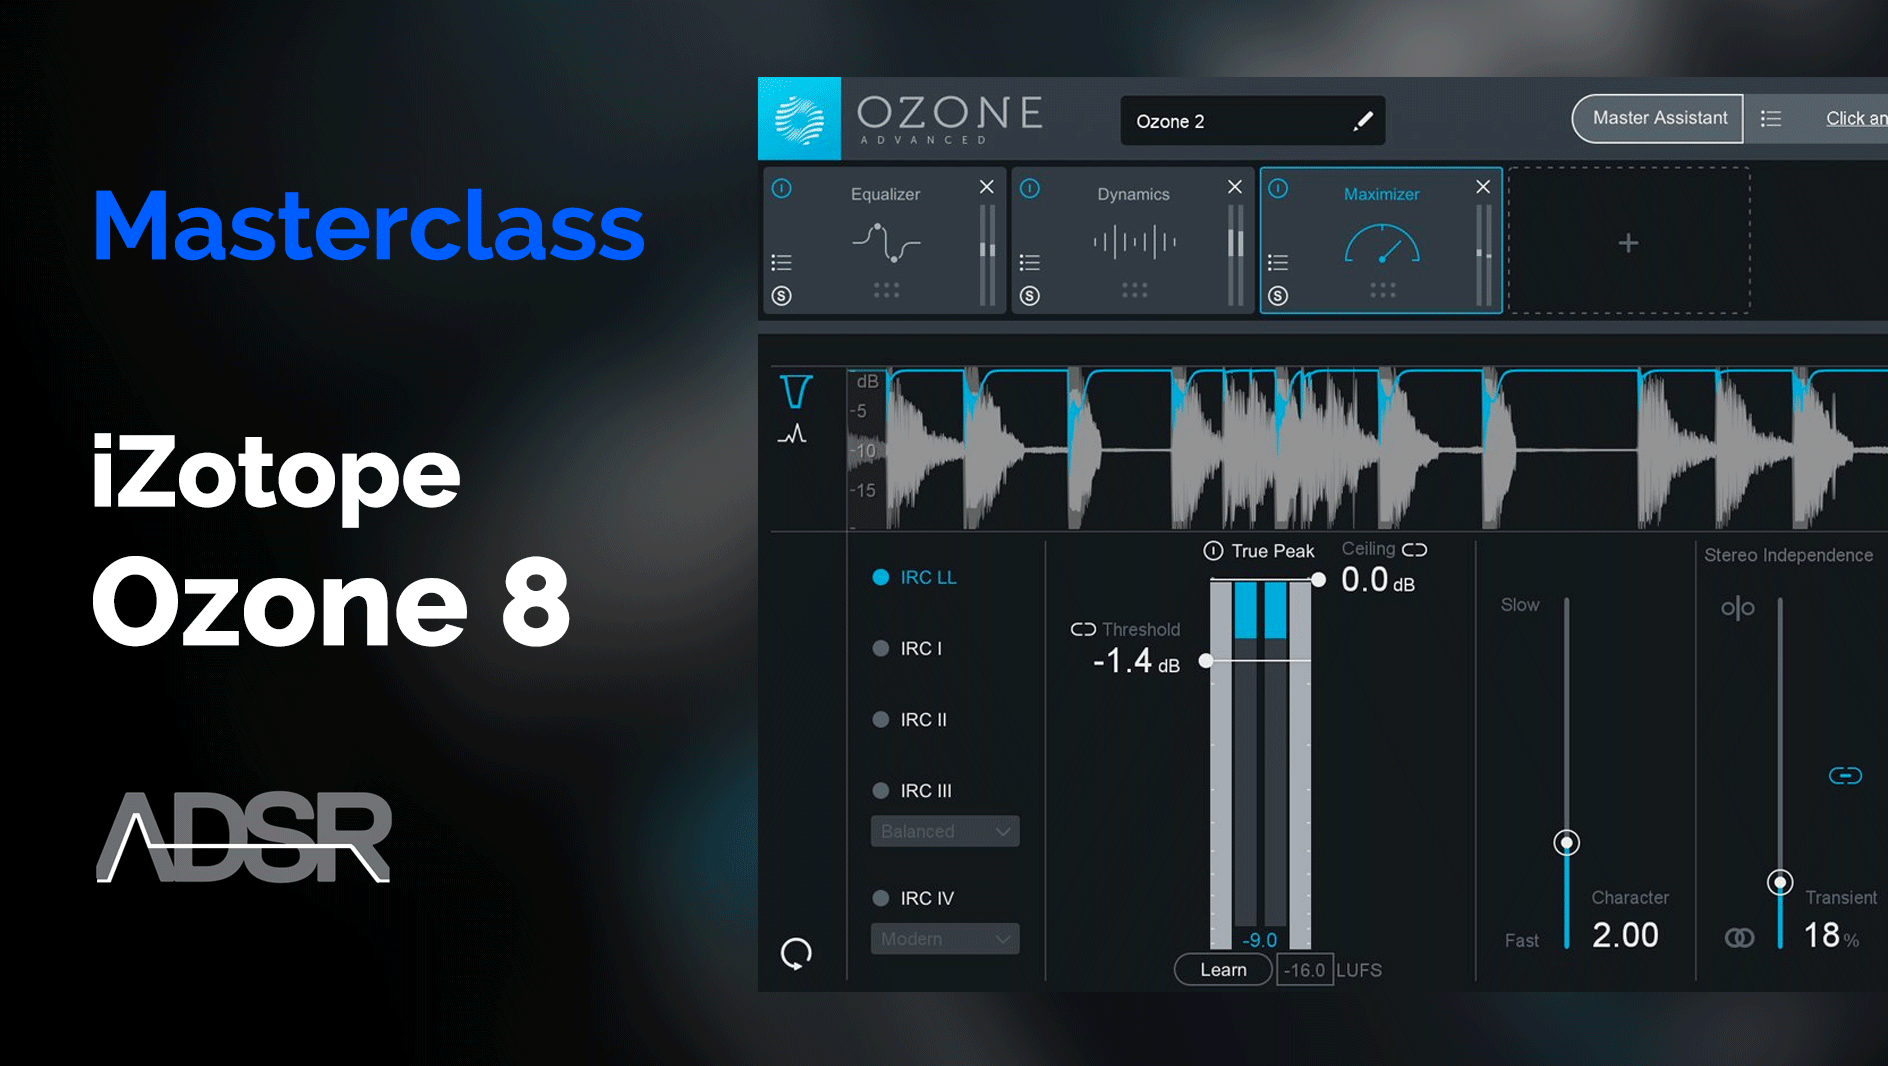 A Complete Guide to Achieving a Professional Master with Ozone 8 & Ozone 8 Advance